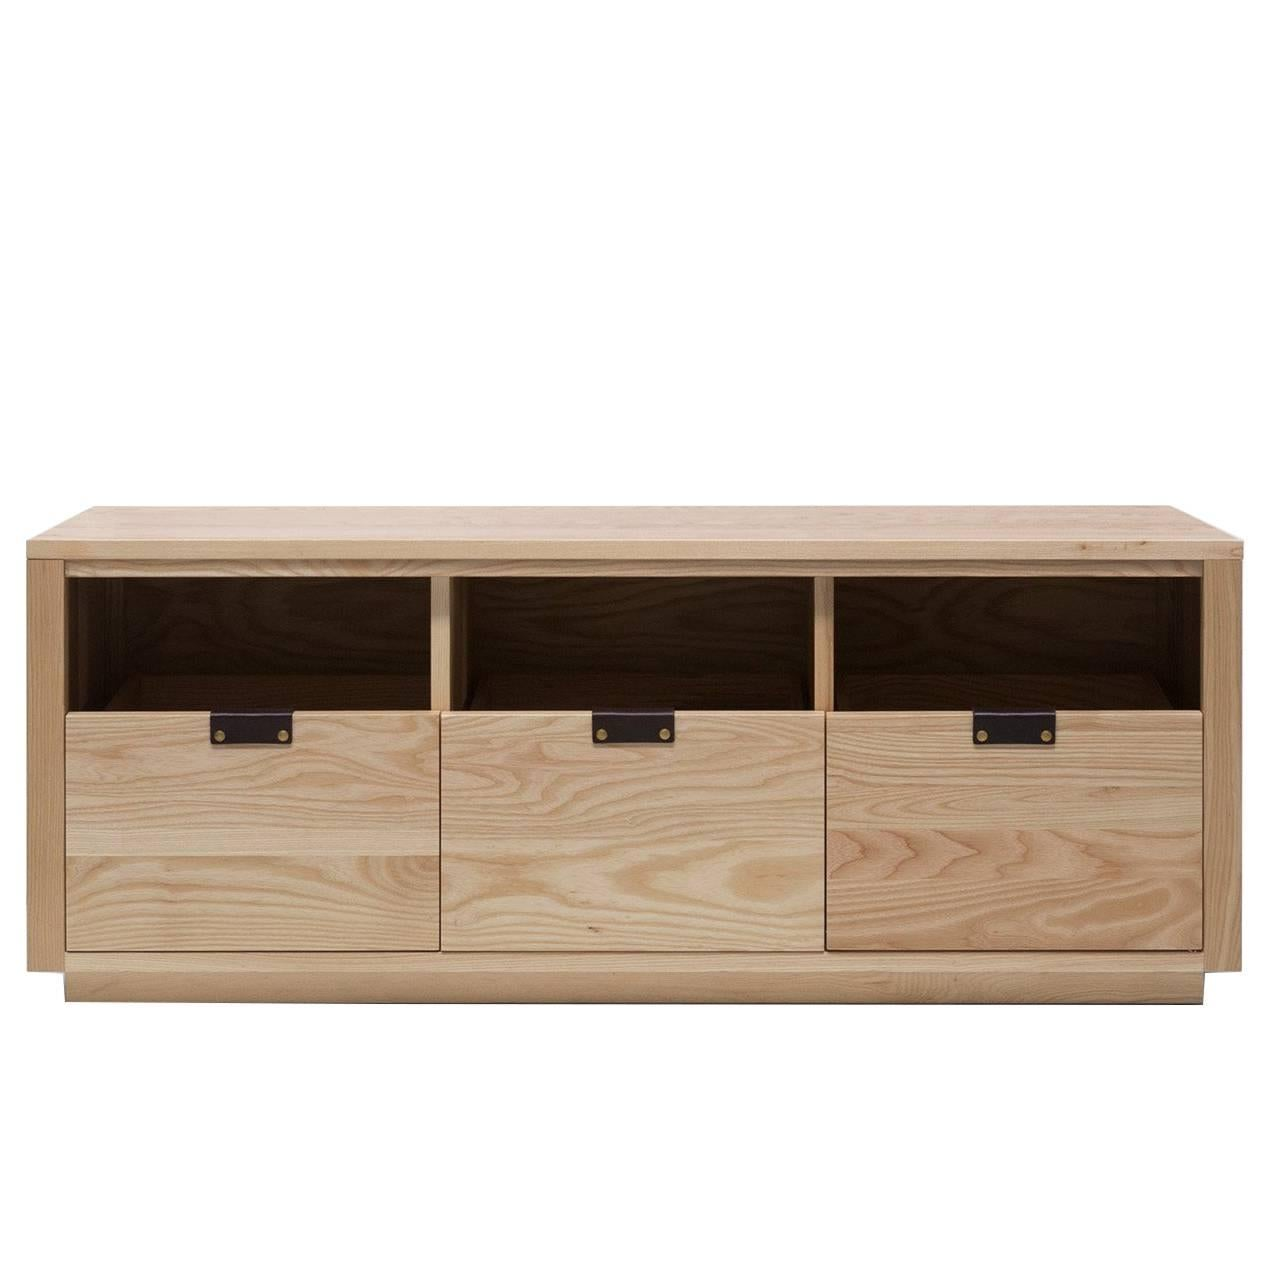 Dovetail Vinyl Record Storage Cabinet in Solid Ash with 3 Drawers